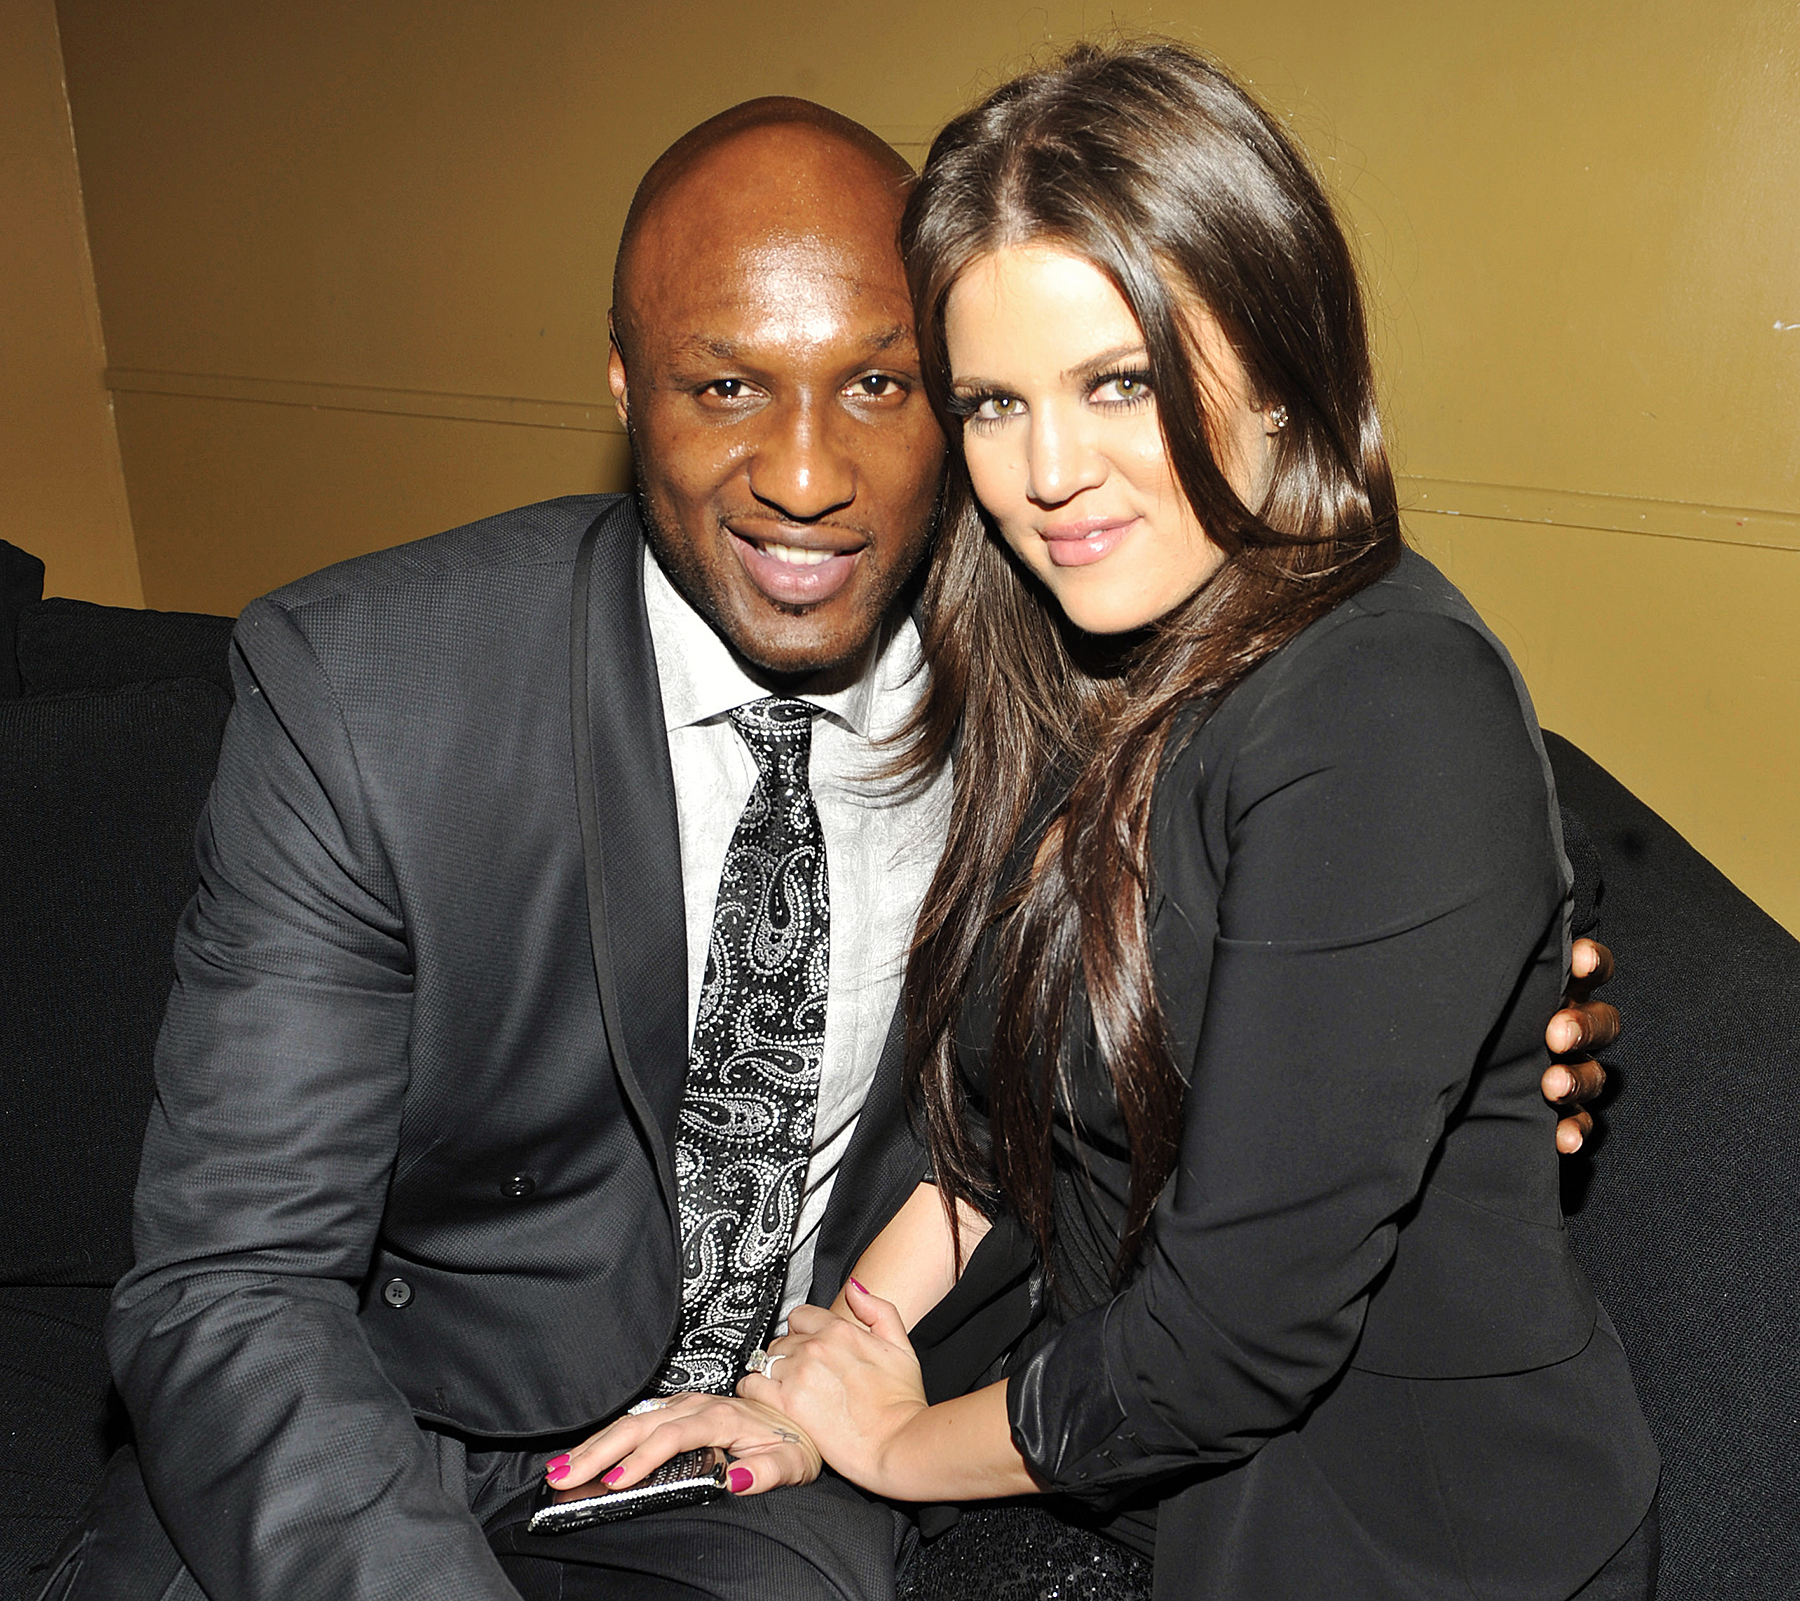 Did Khloé Kardashian Kick Lamar Odom Out of the House After Finding a CrackPipe